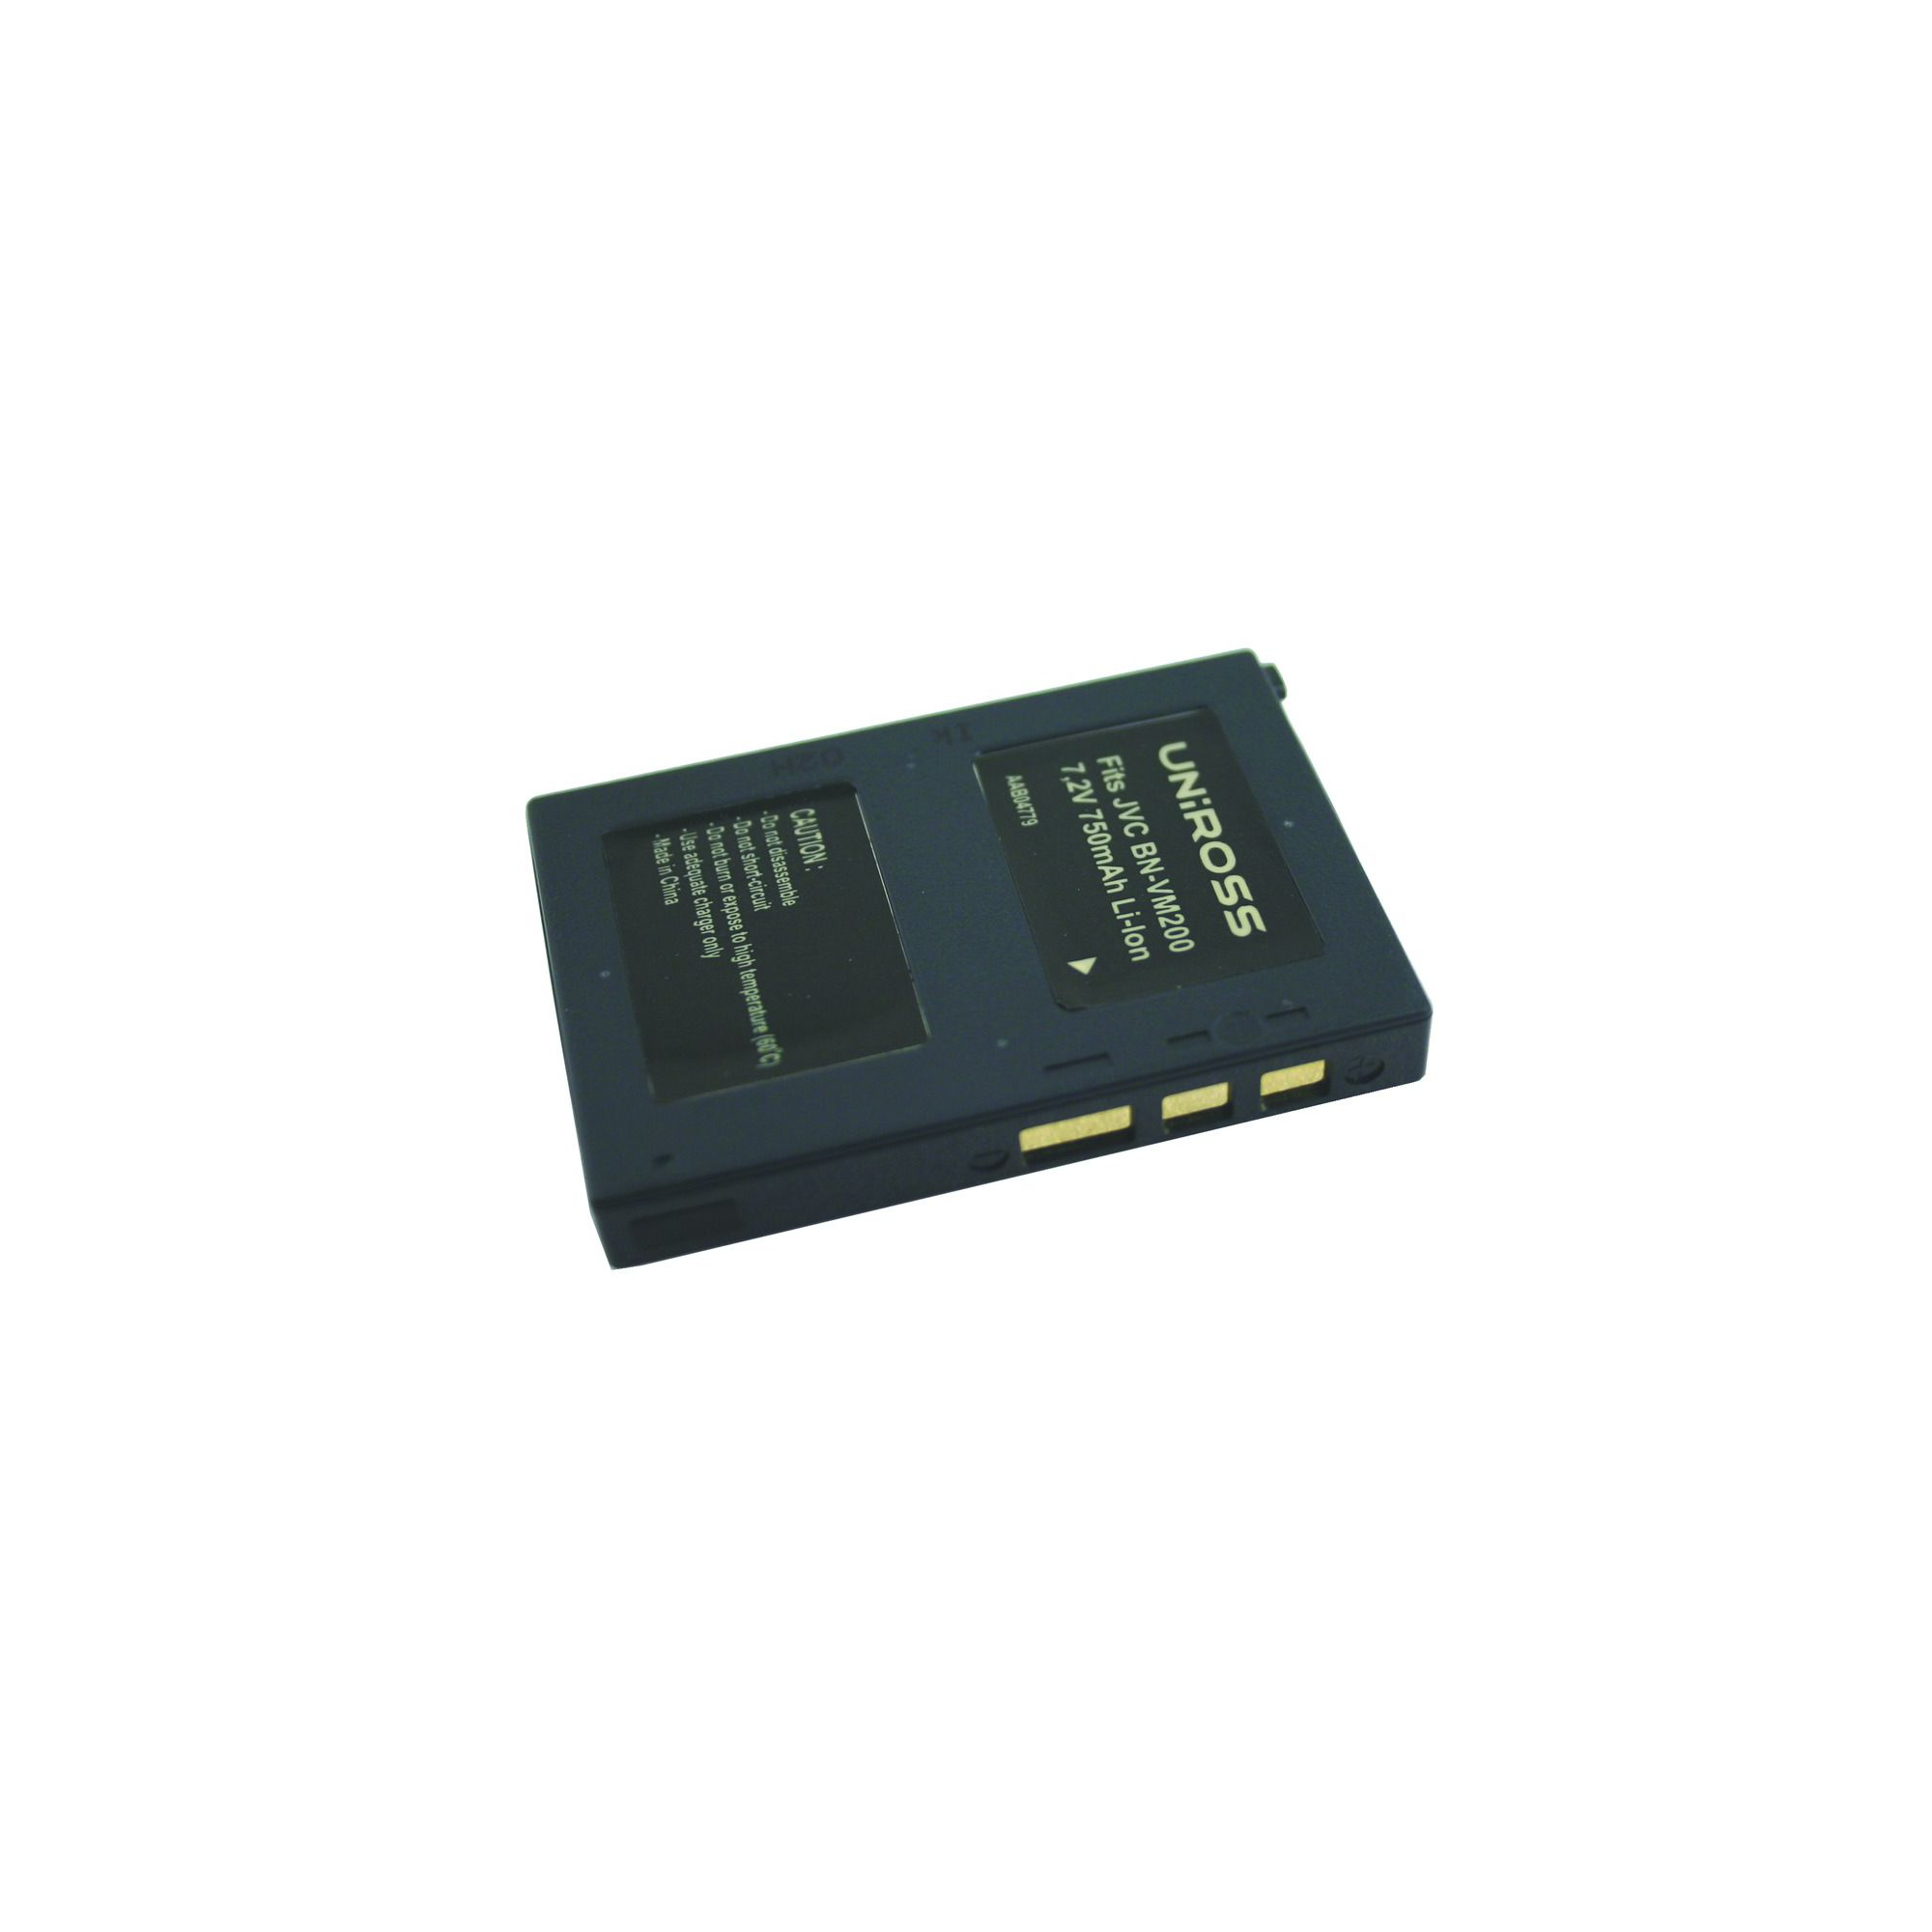 Replacement for JVC BNVM200U Camcorder Battery